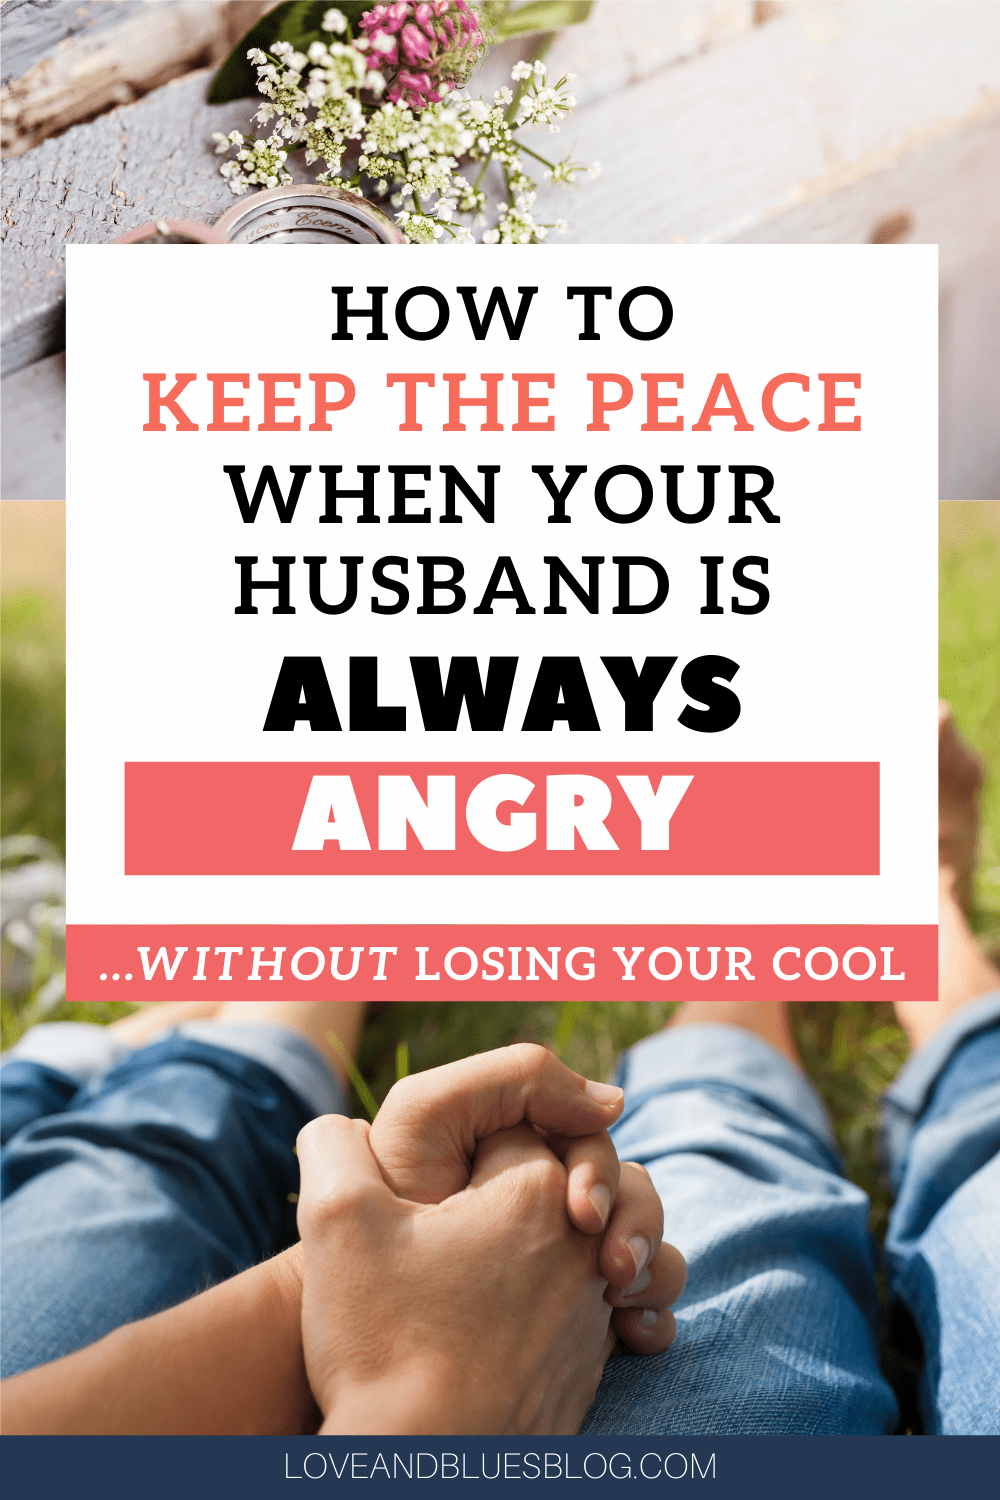 Great Christian-based marriage advice on what to do when it seems like your husband is always angry! Very balanced between being understanding and upholding your own boundaries.